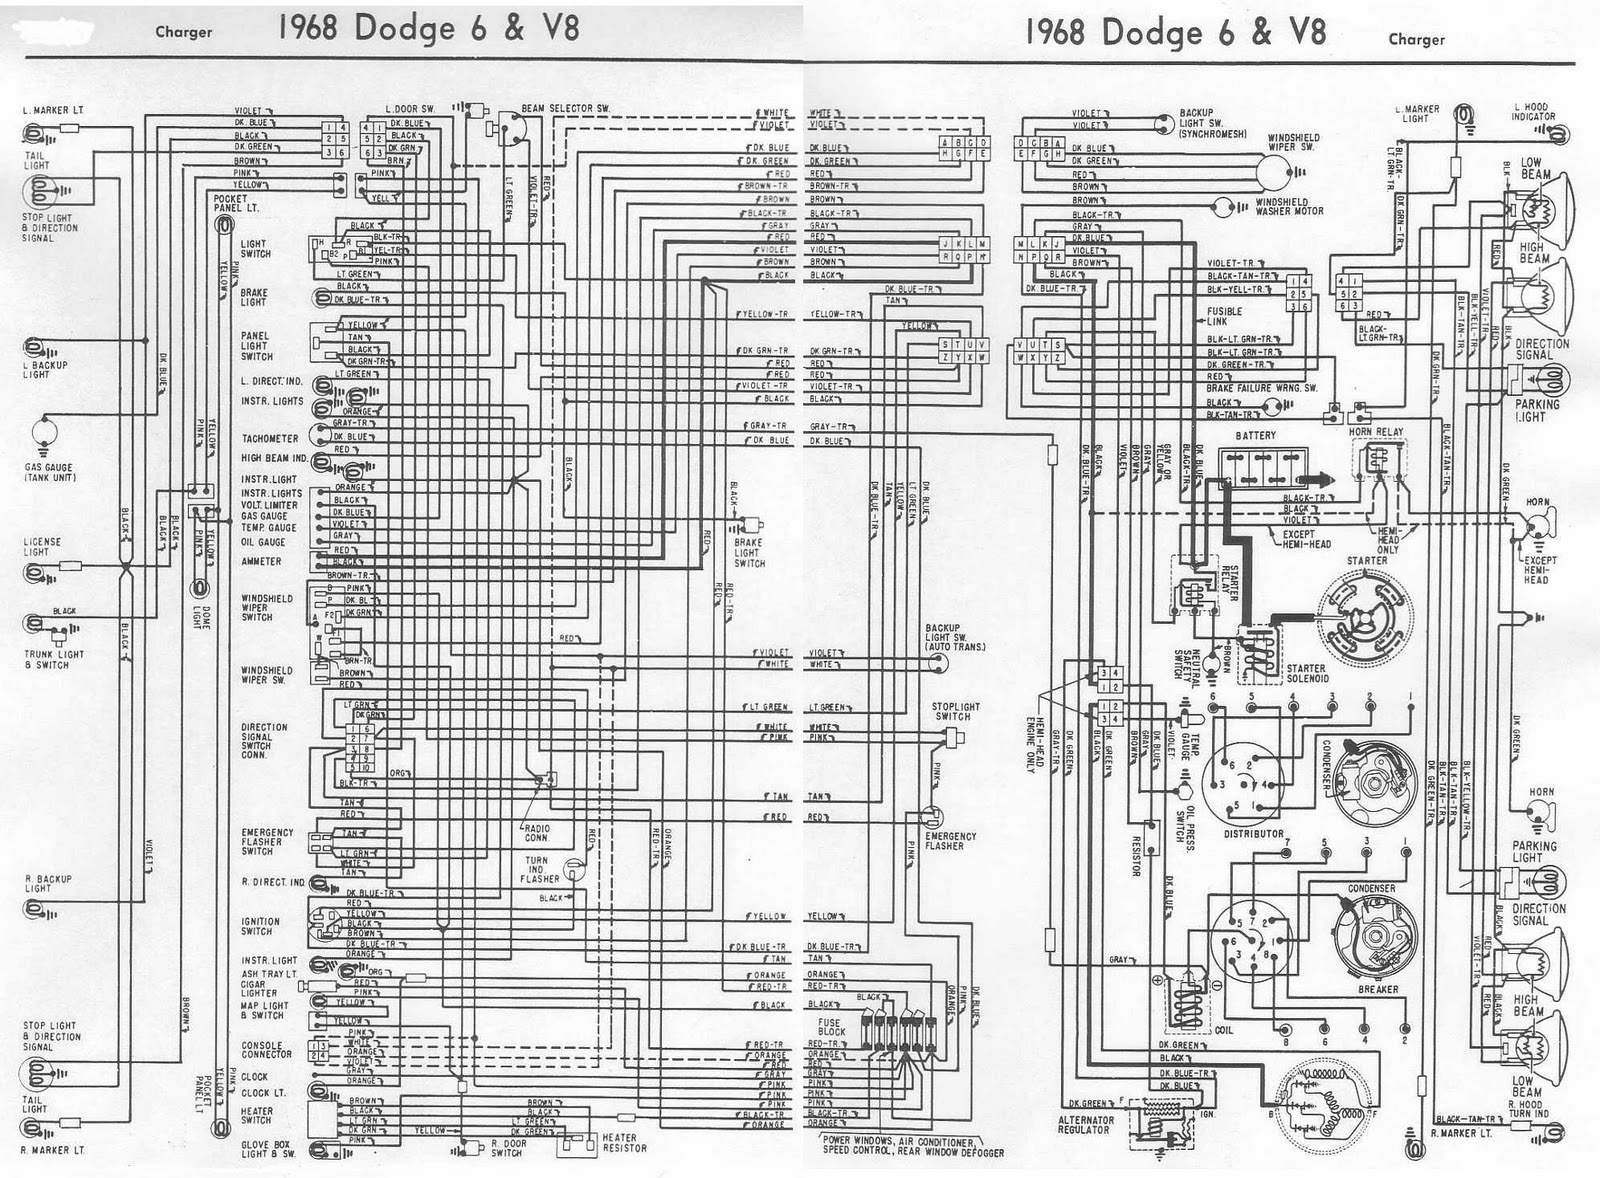 1968 chrysler wiring diagram wiring diagram for 1968 dodge polara wiring wiring diagrams online dodge charger 1968 6 and v8